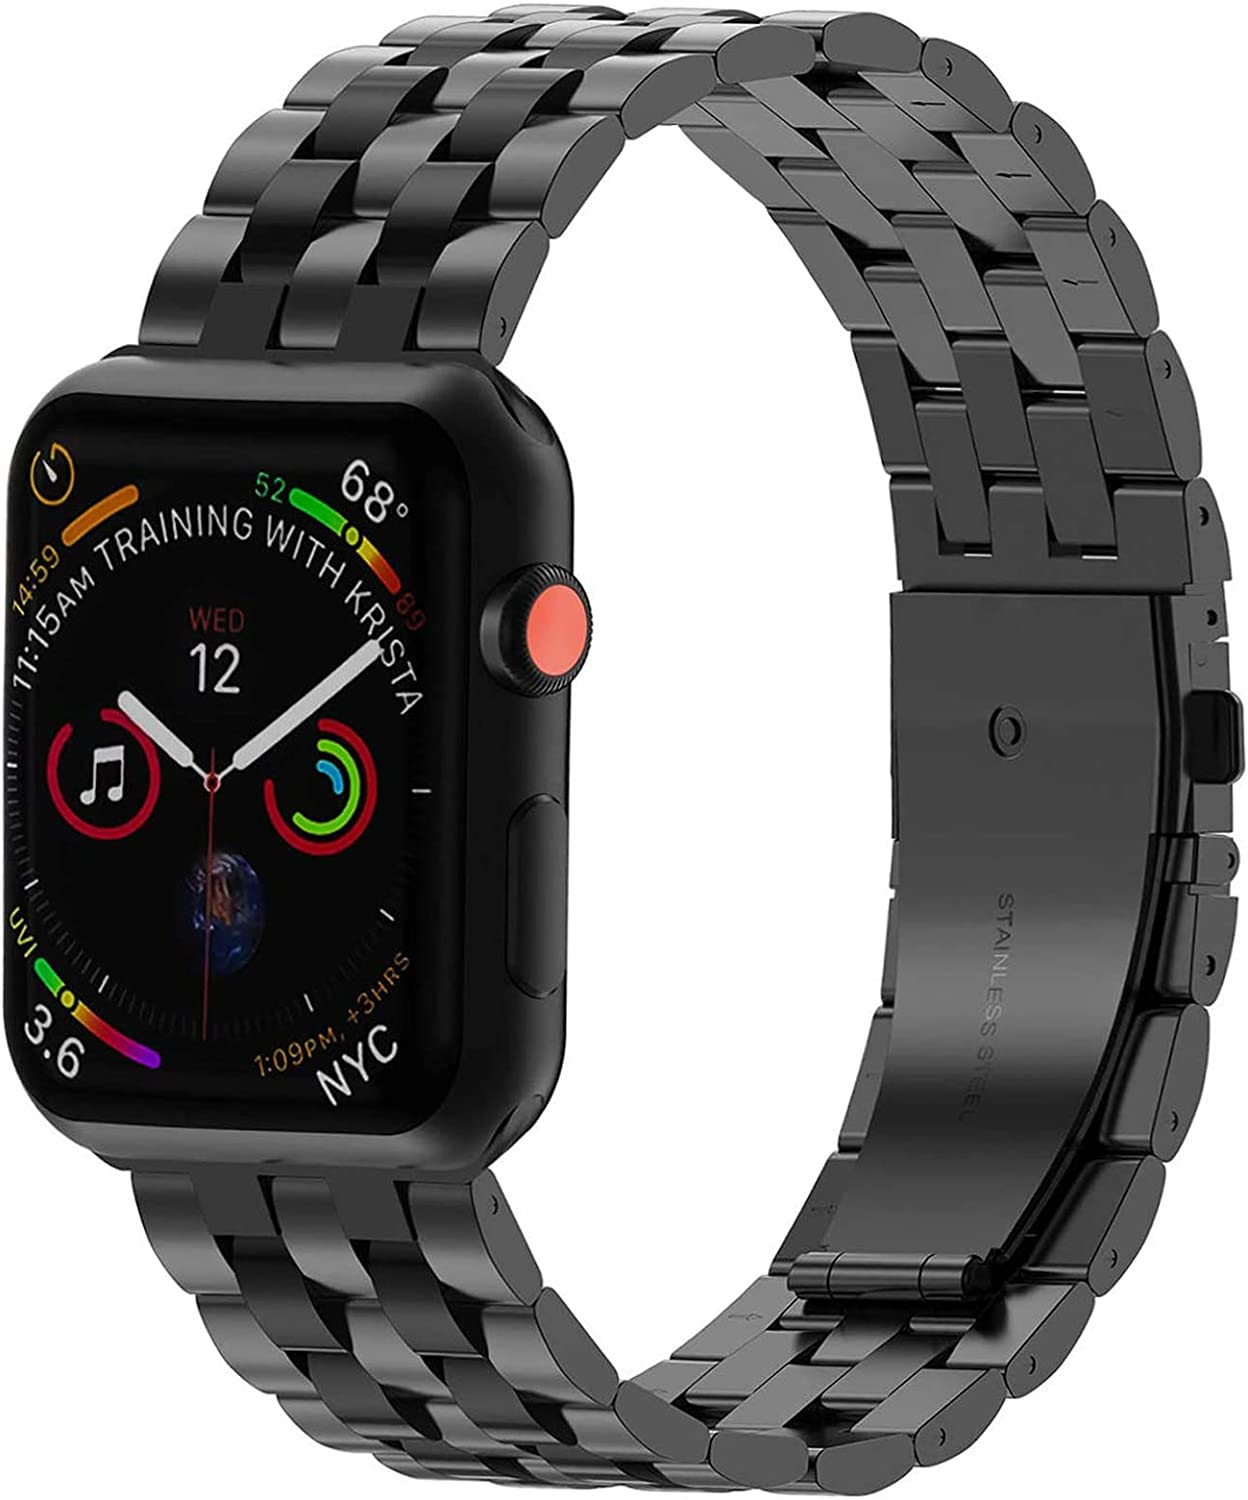 PUGO TOP Replacement for Apple Watch Band 38mm 40mm 42mm 44mm Stainless Steel Metal Iwatch Iphone Watch Link Band for Apple Watch Series 6/5/4/3/2/1/SE